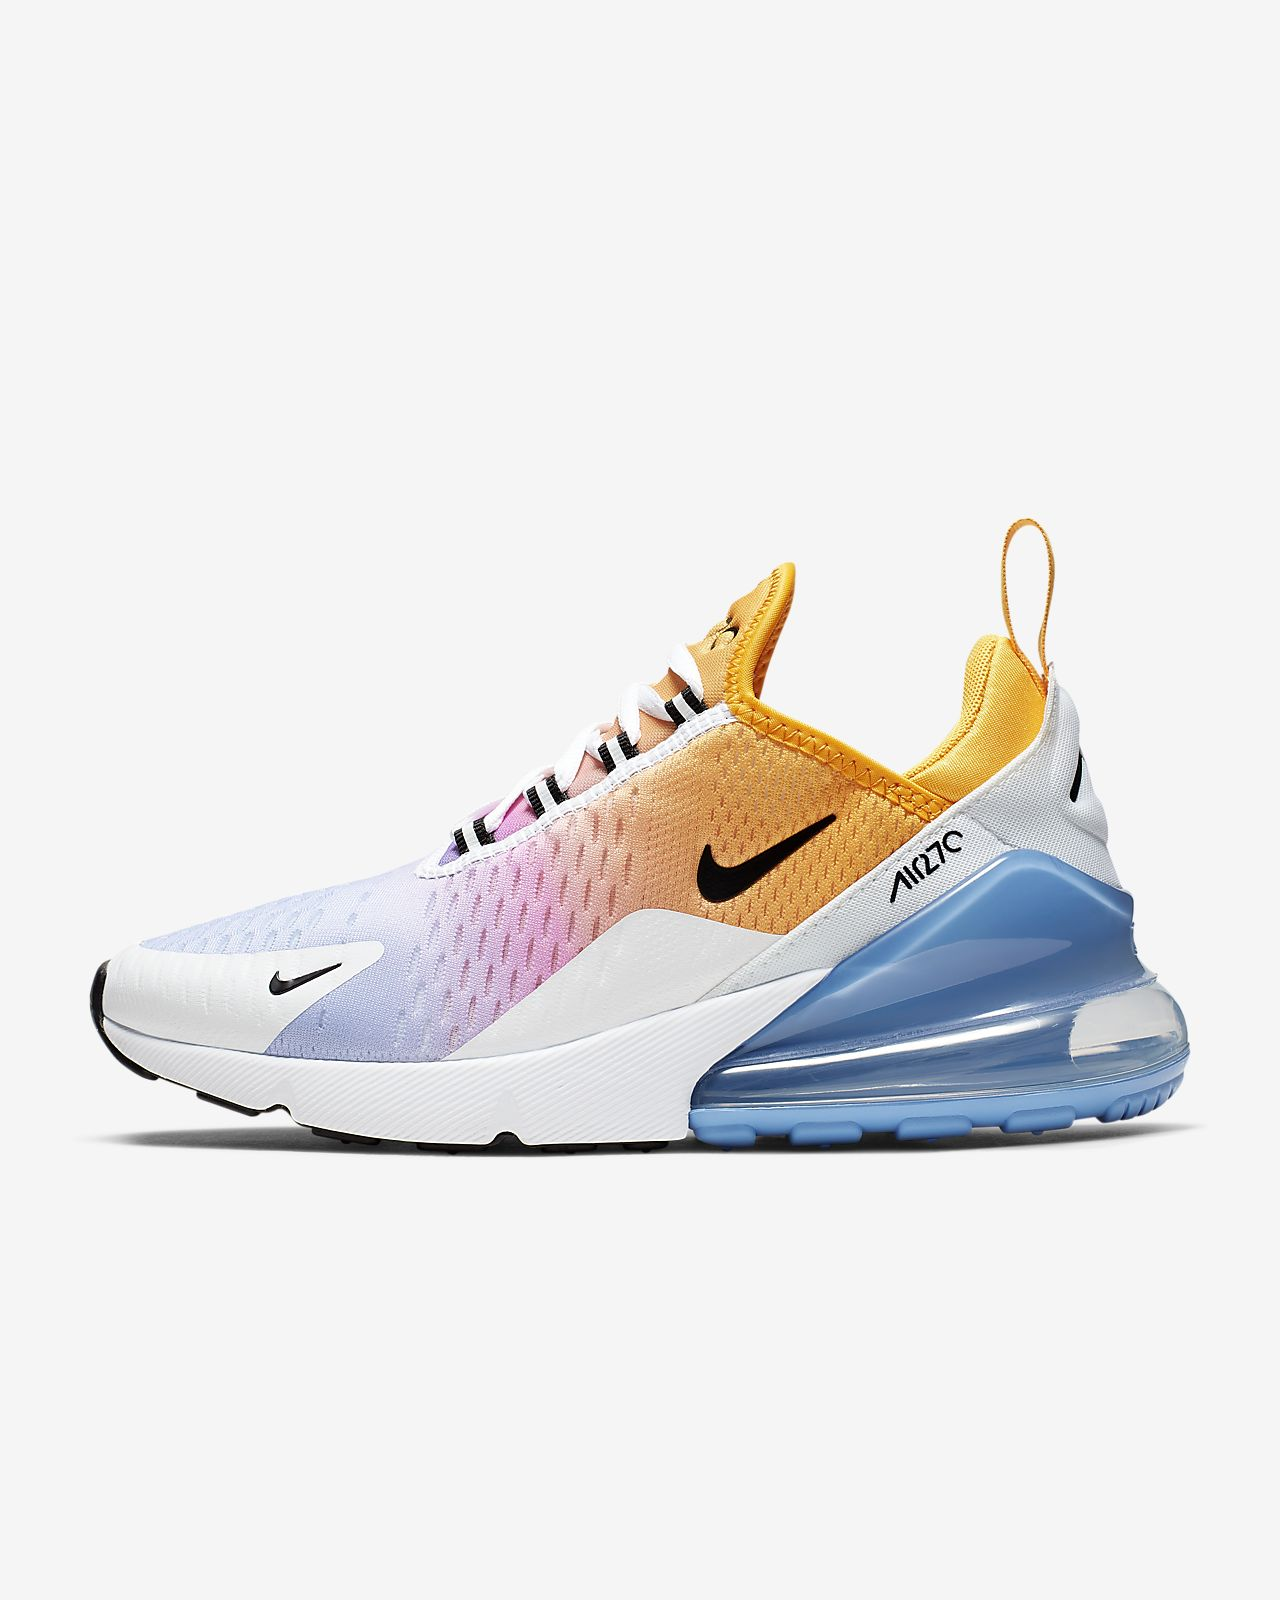 789d41aab2 Nike Air Max 270 Women's Shoe. Nike.com